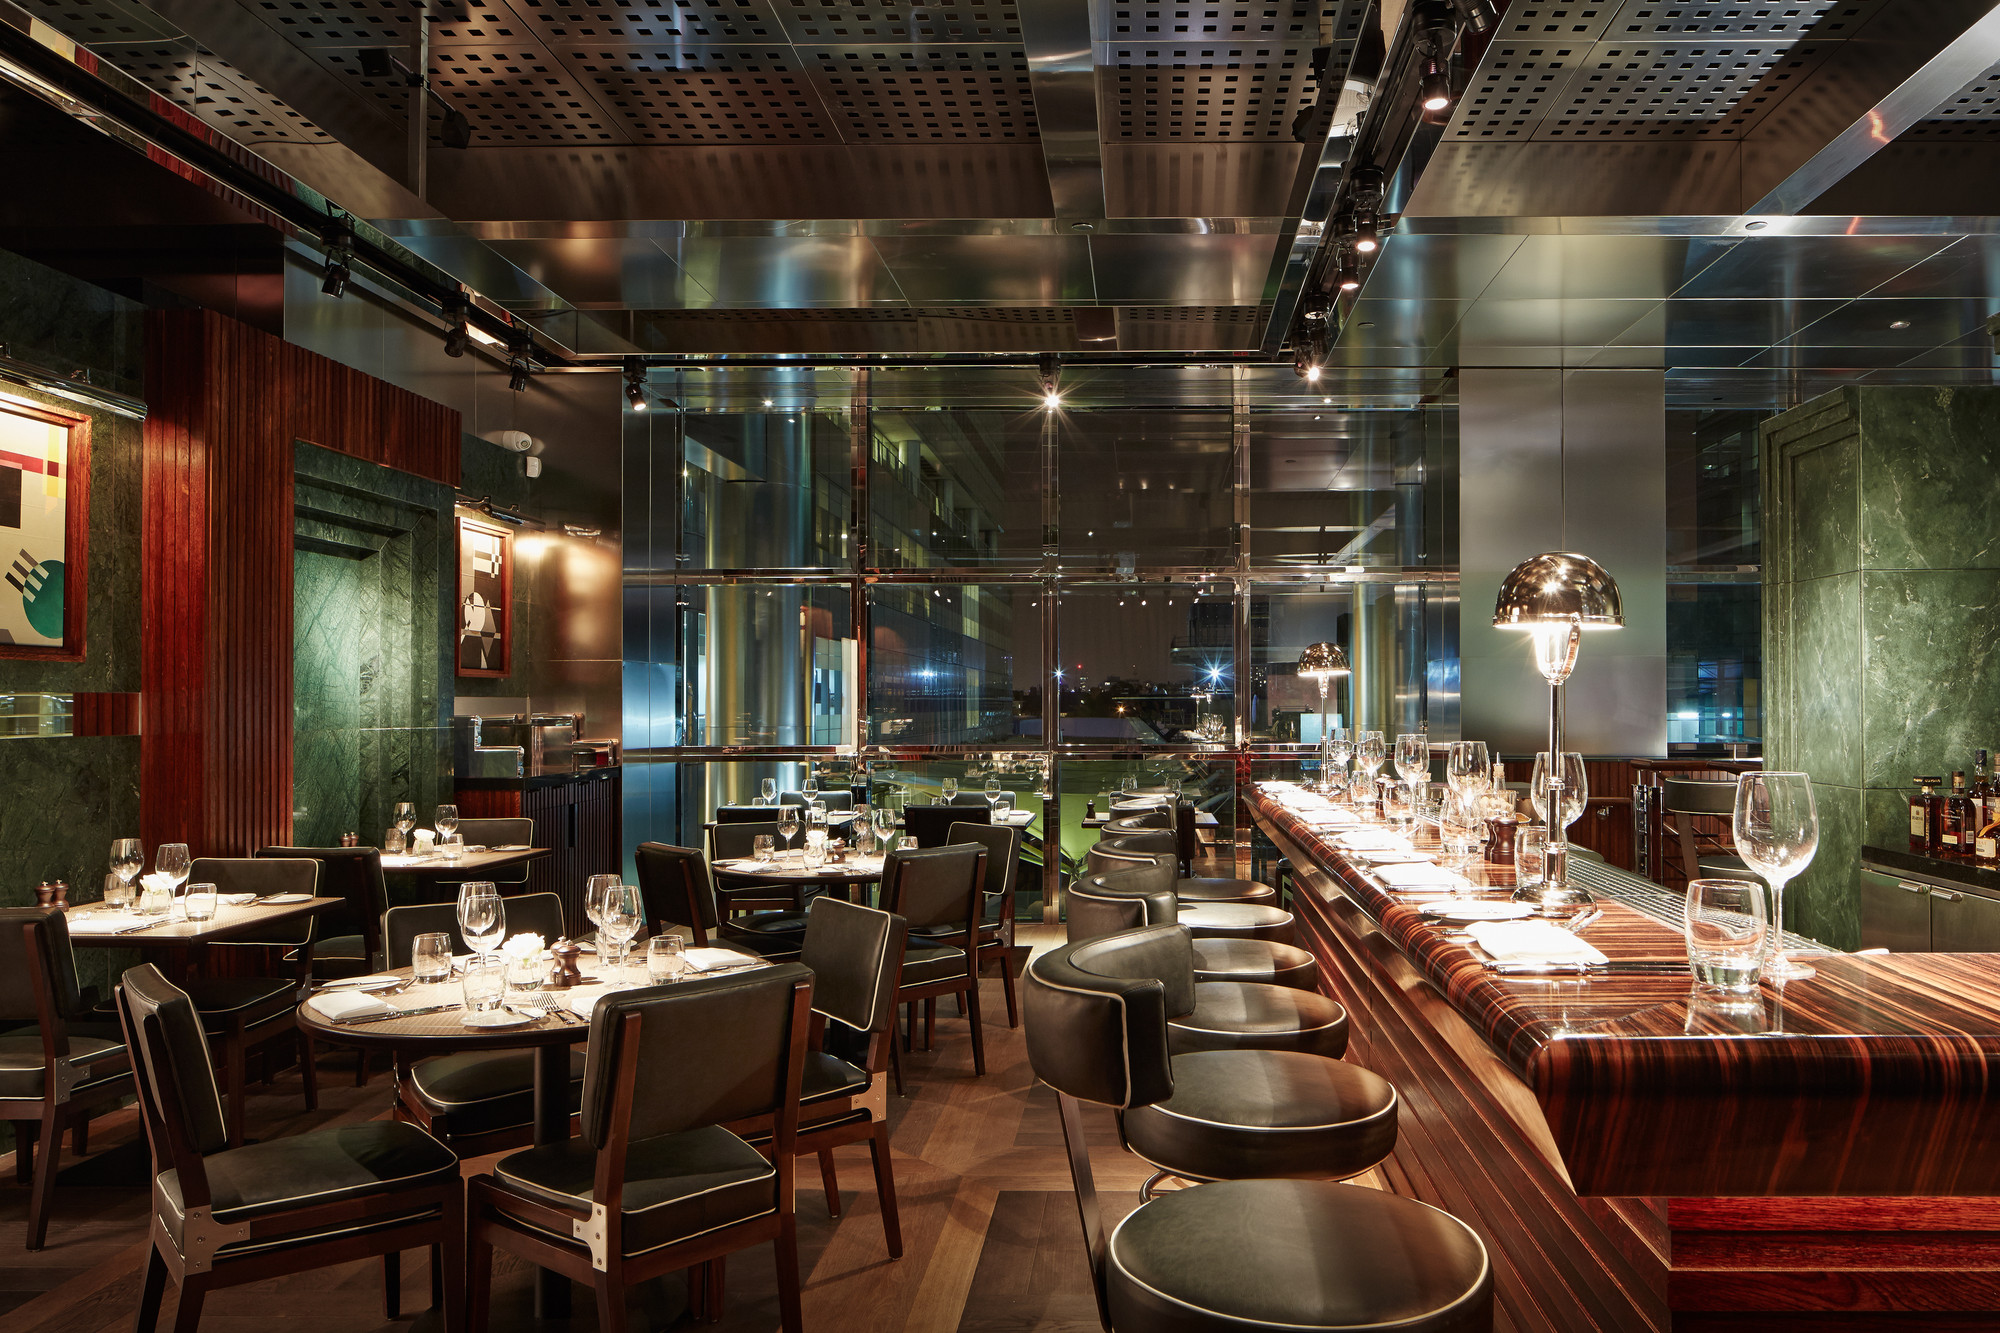 Studio reed jonathan reed s spare crafted interior design - 2014 Restaurant Bar Design Award Winners Archdaily